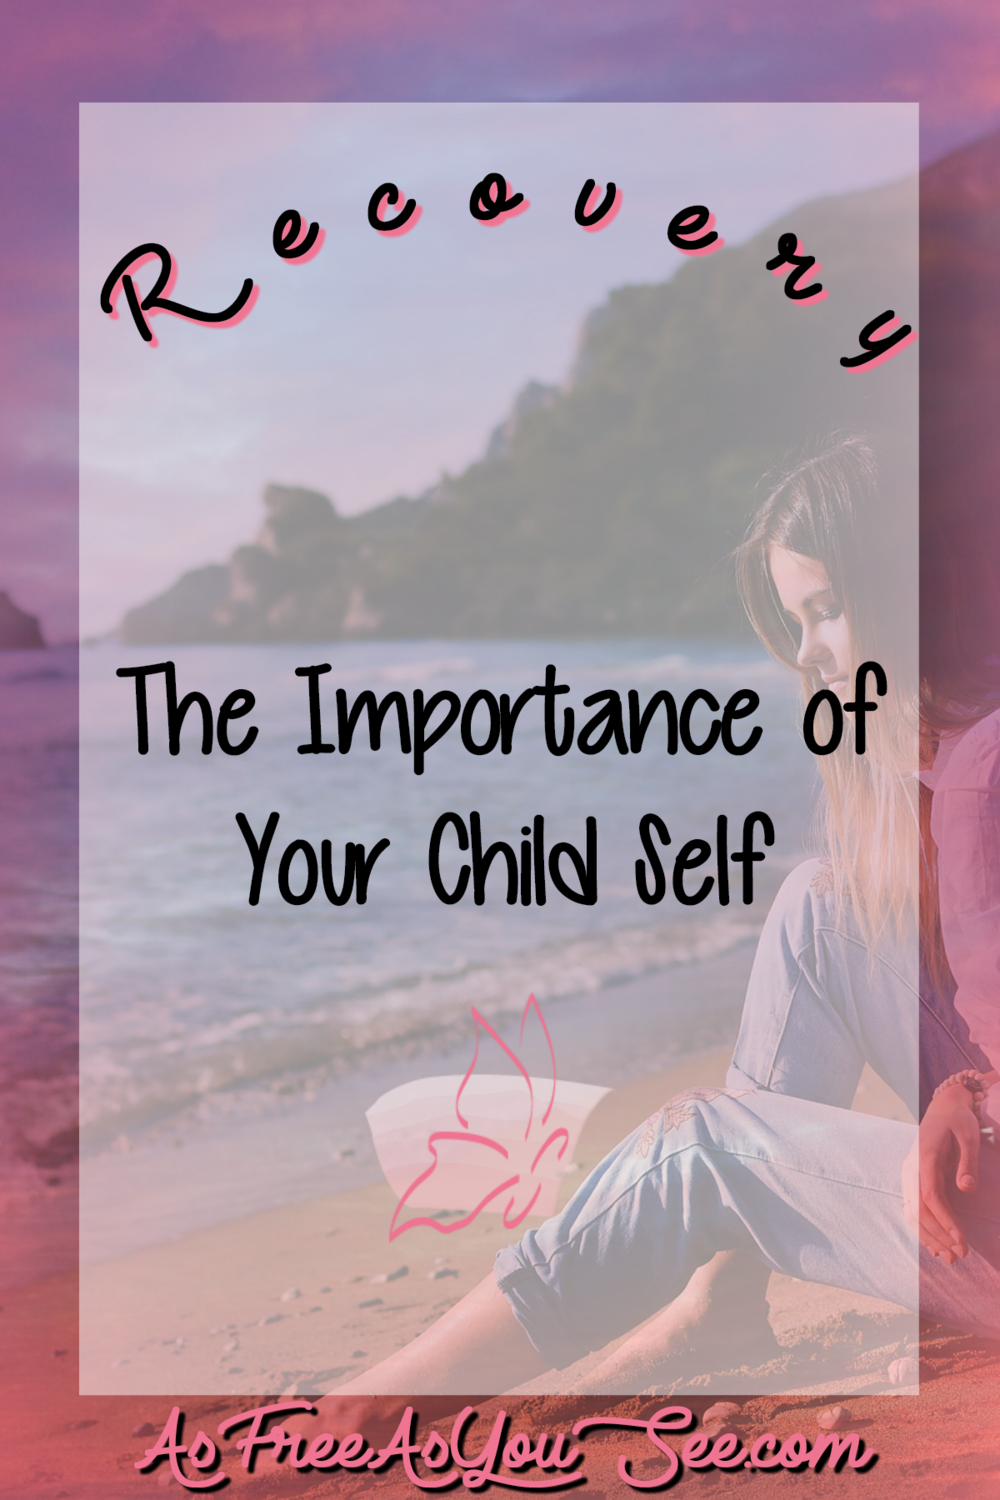 Recovery: The Importance of Your Child Self